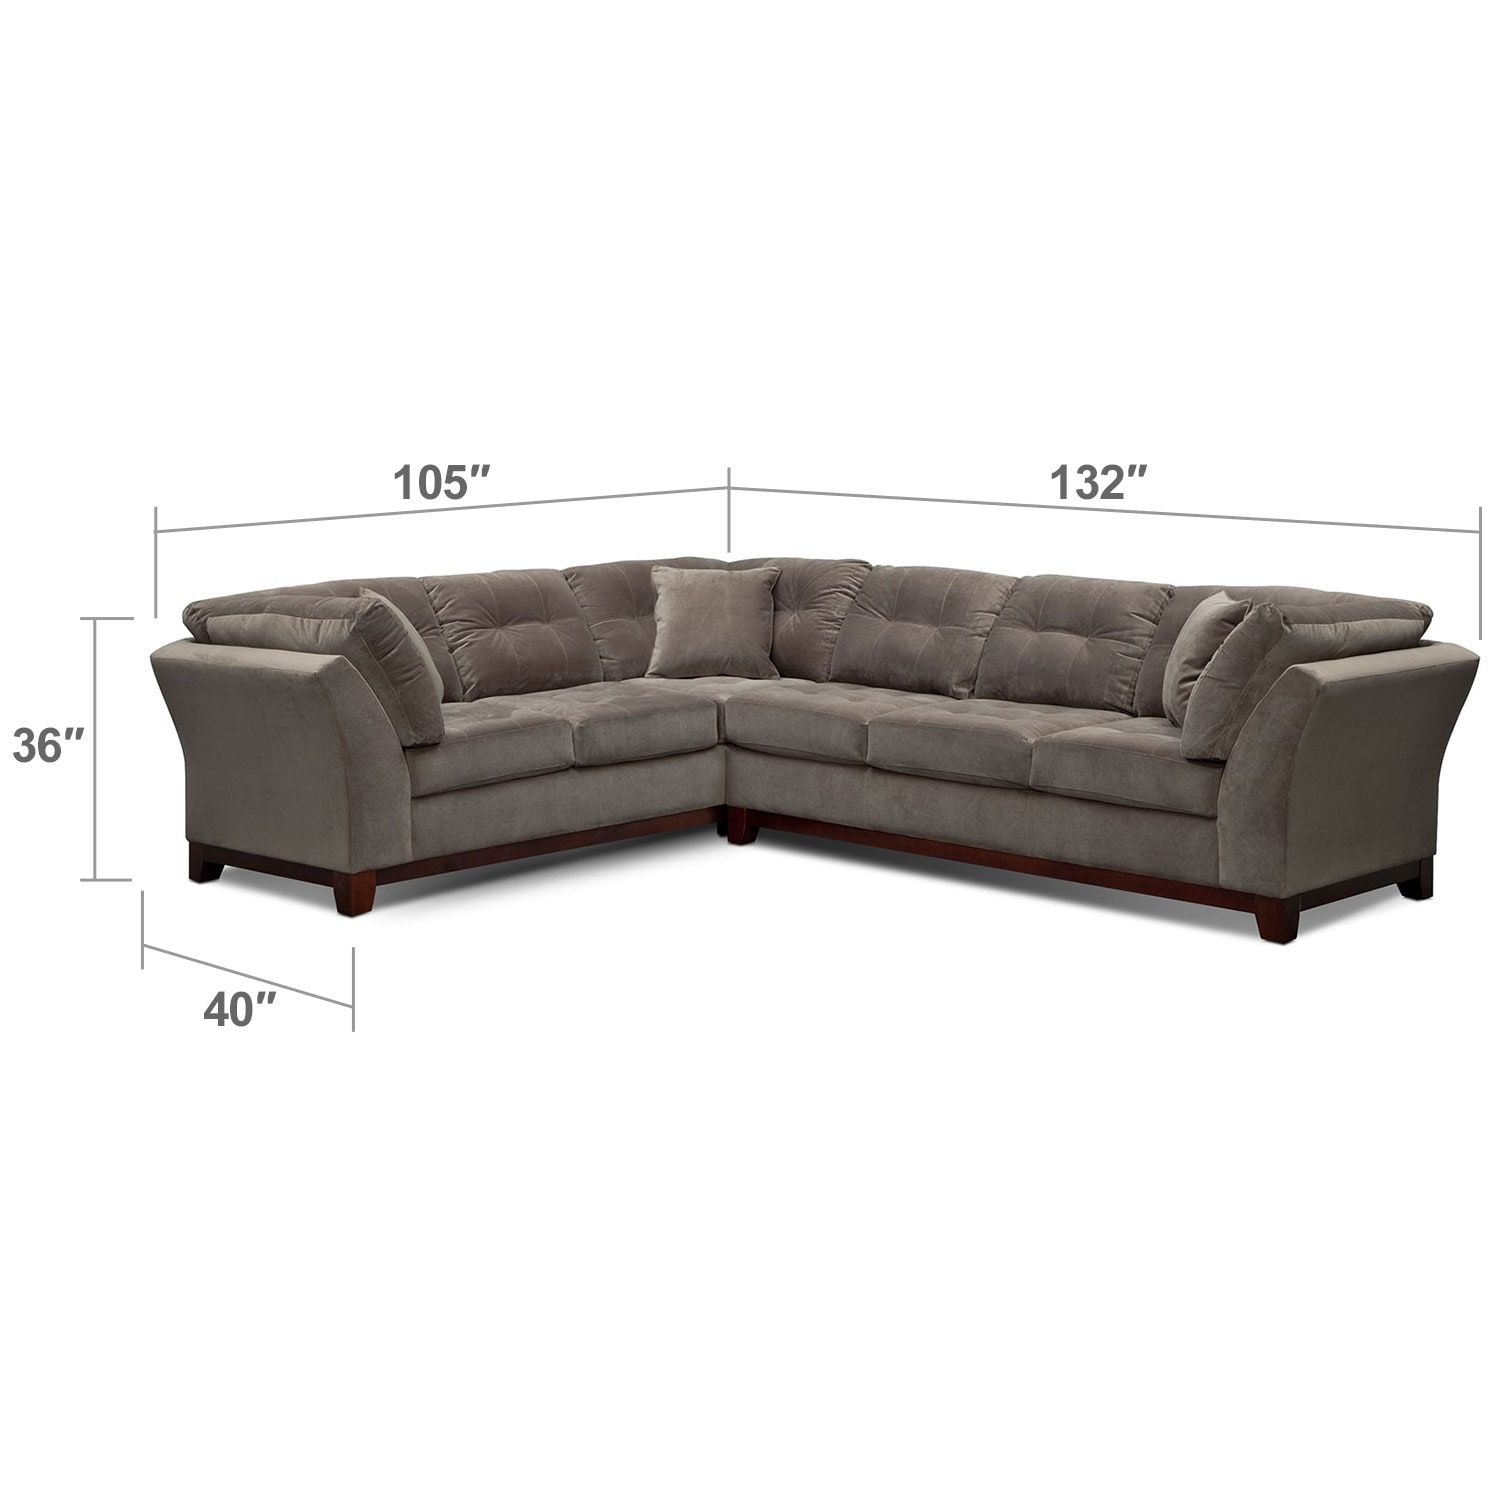 "Living Room Furniture - Solace 2-Piece Right-Facing 132"" Sofa Sectional - Gray"